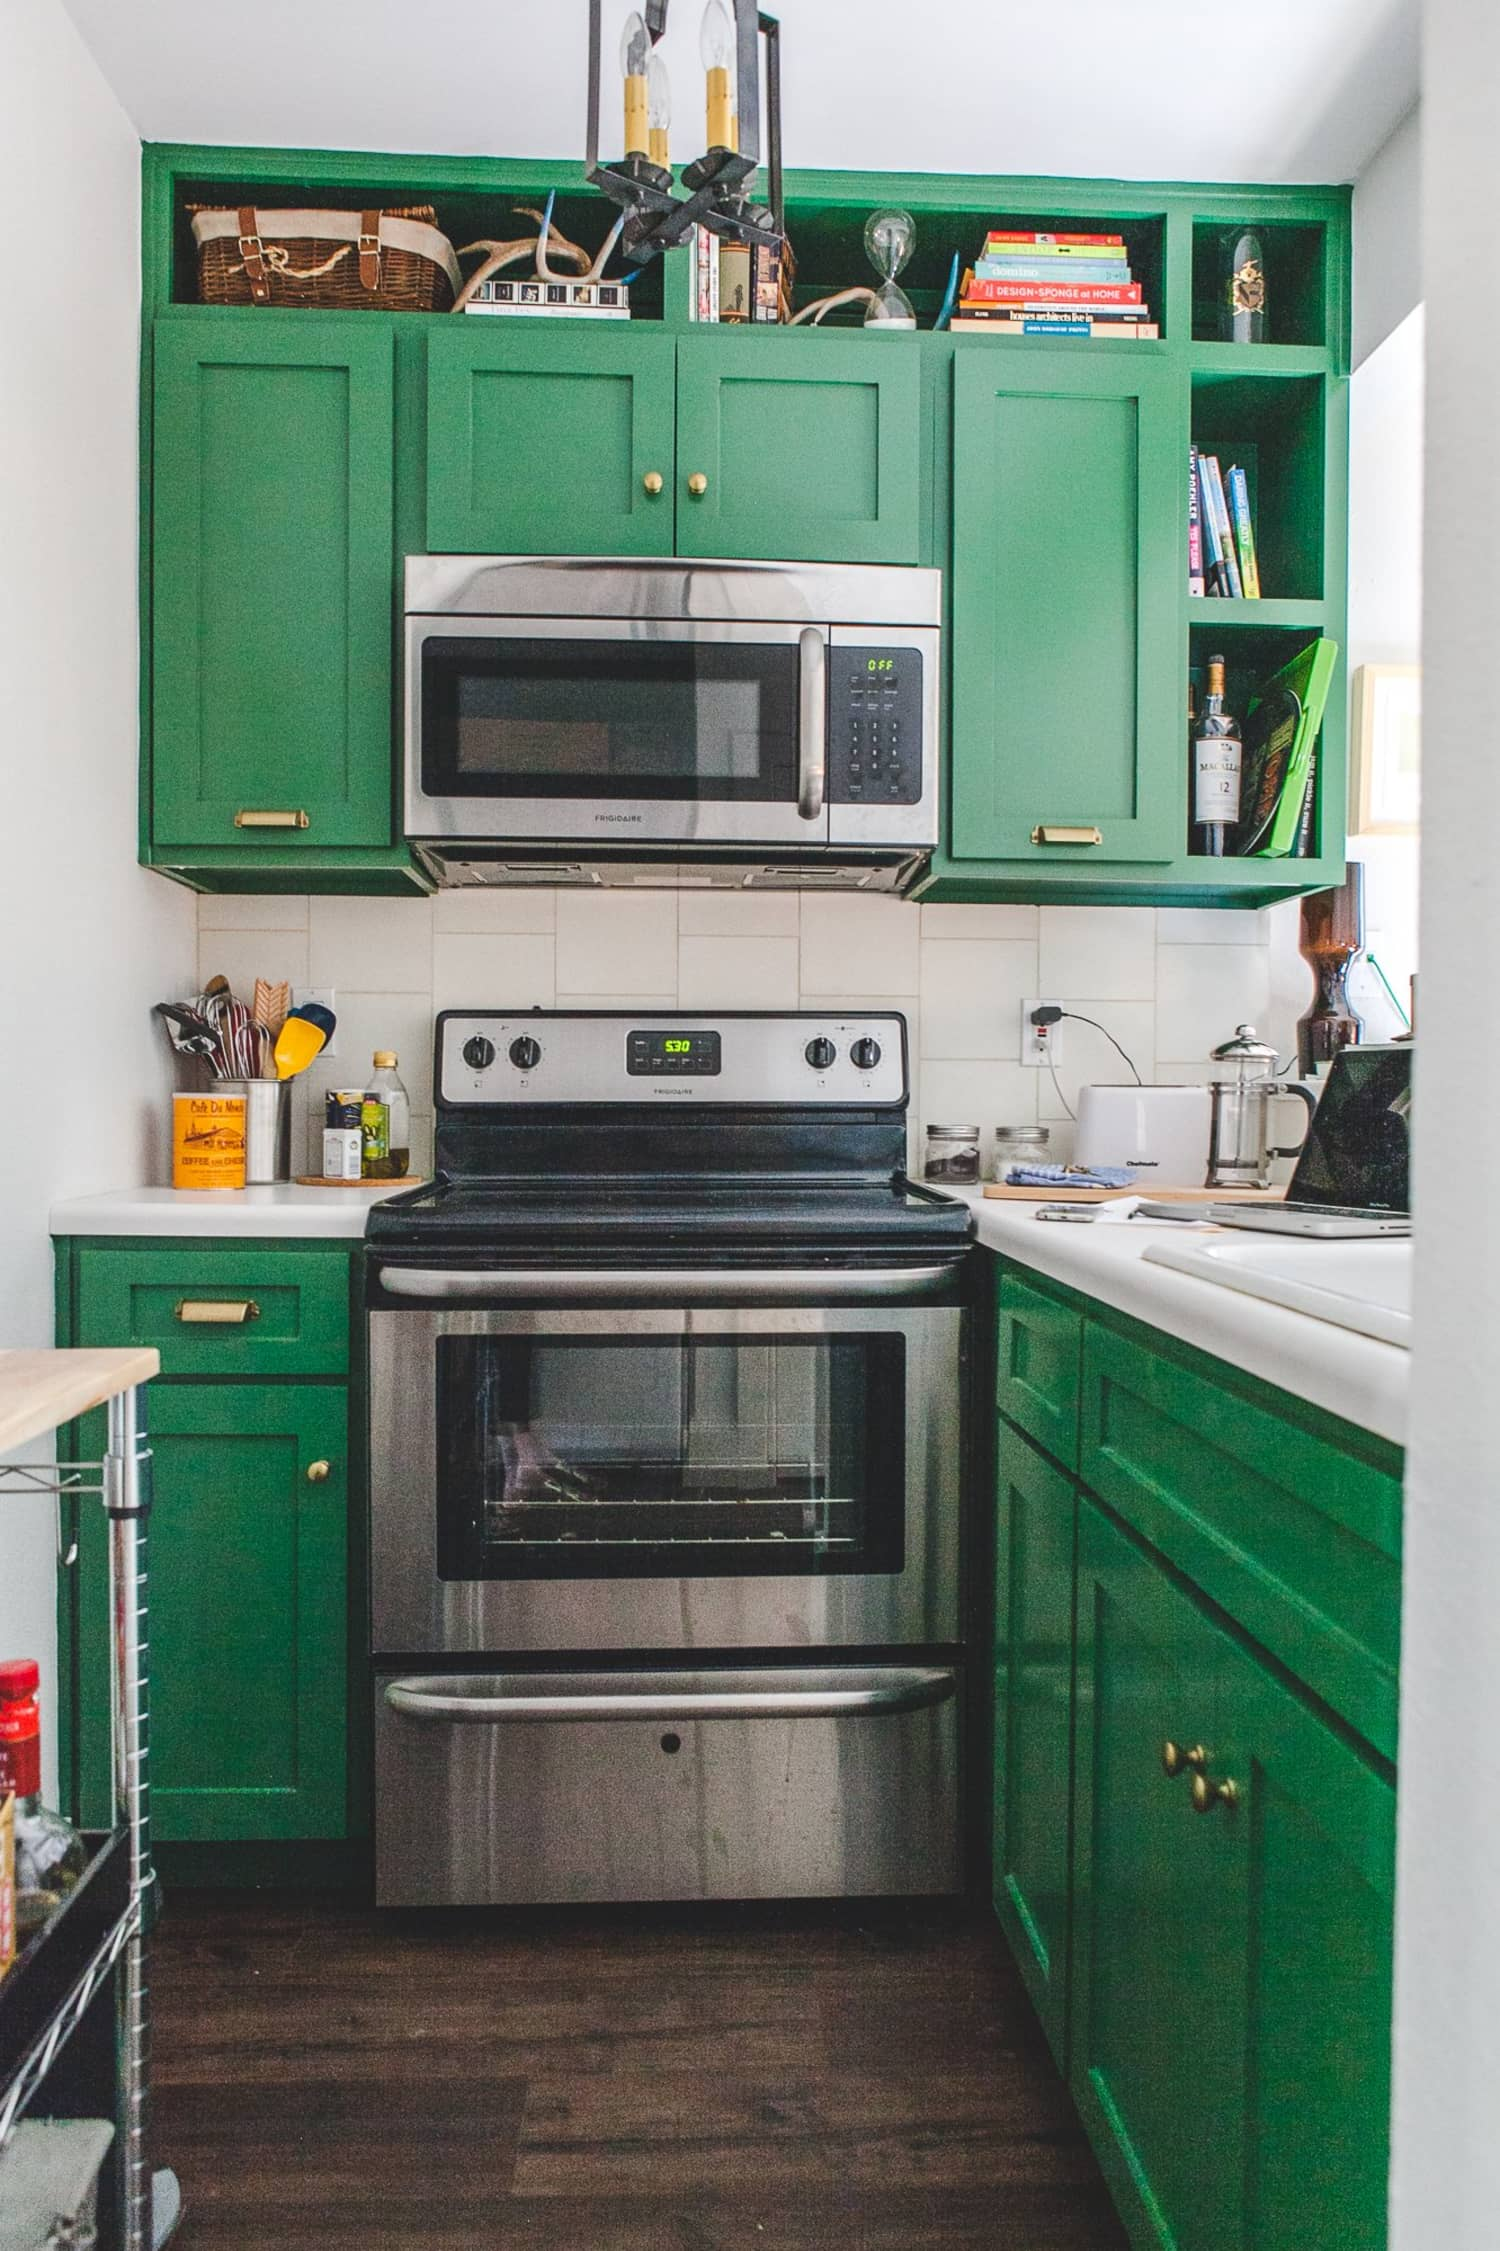 9 Ways to Squeeze More Storage Out of Your Tiny Kitchen